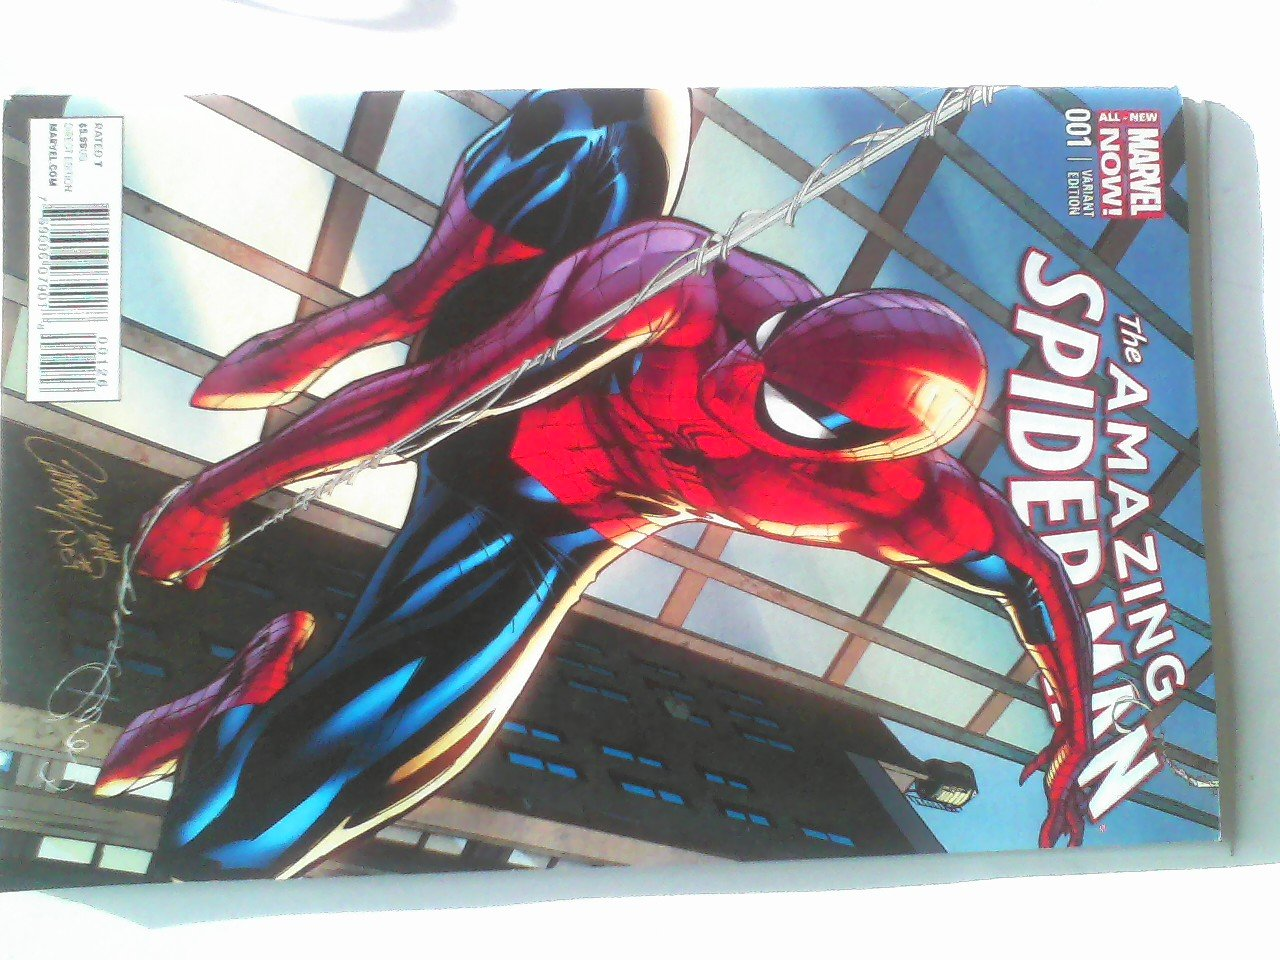 Spider-man # 1,Amazing Spider-man #1 Campbell Variant, Superior Spider-man #1